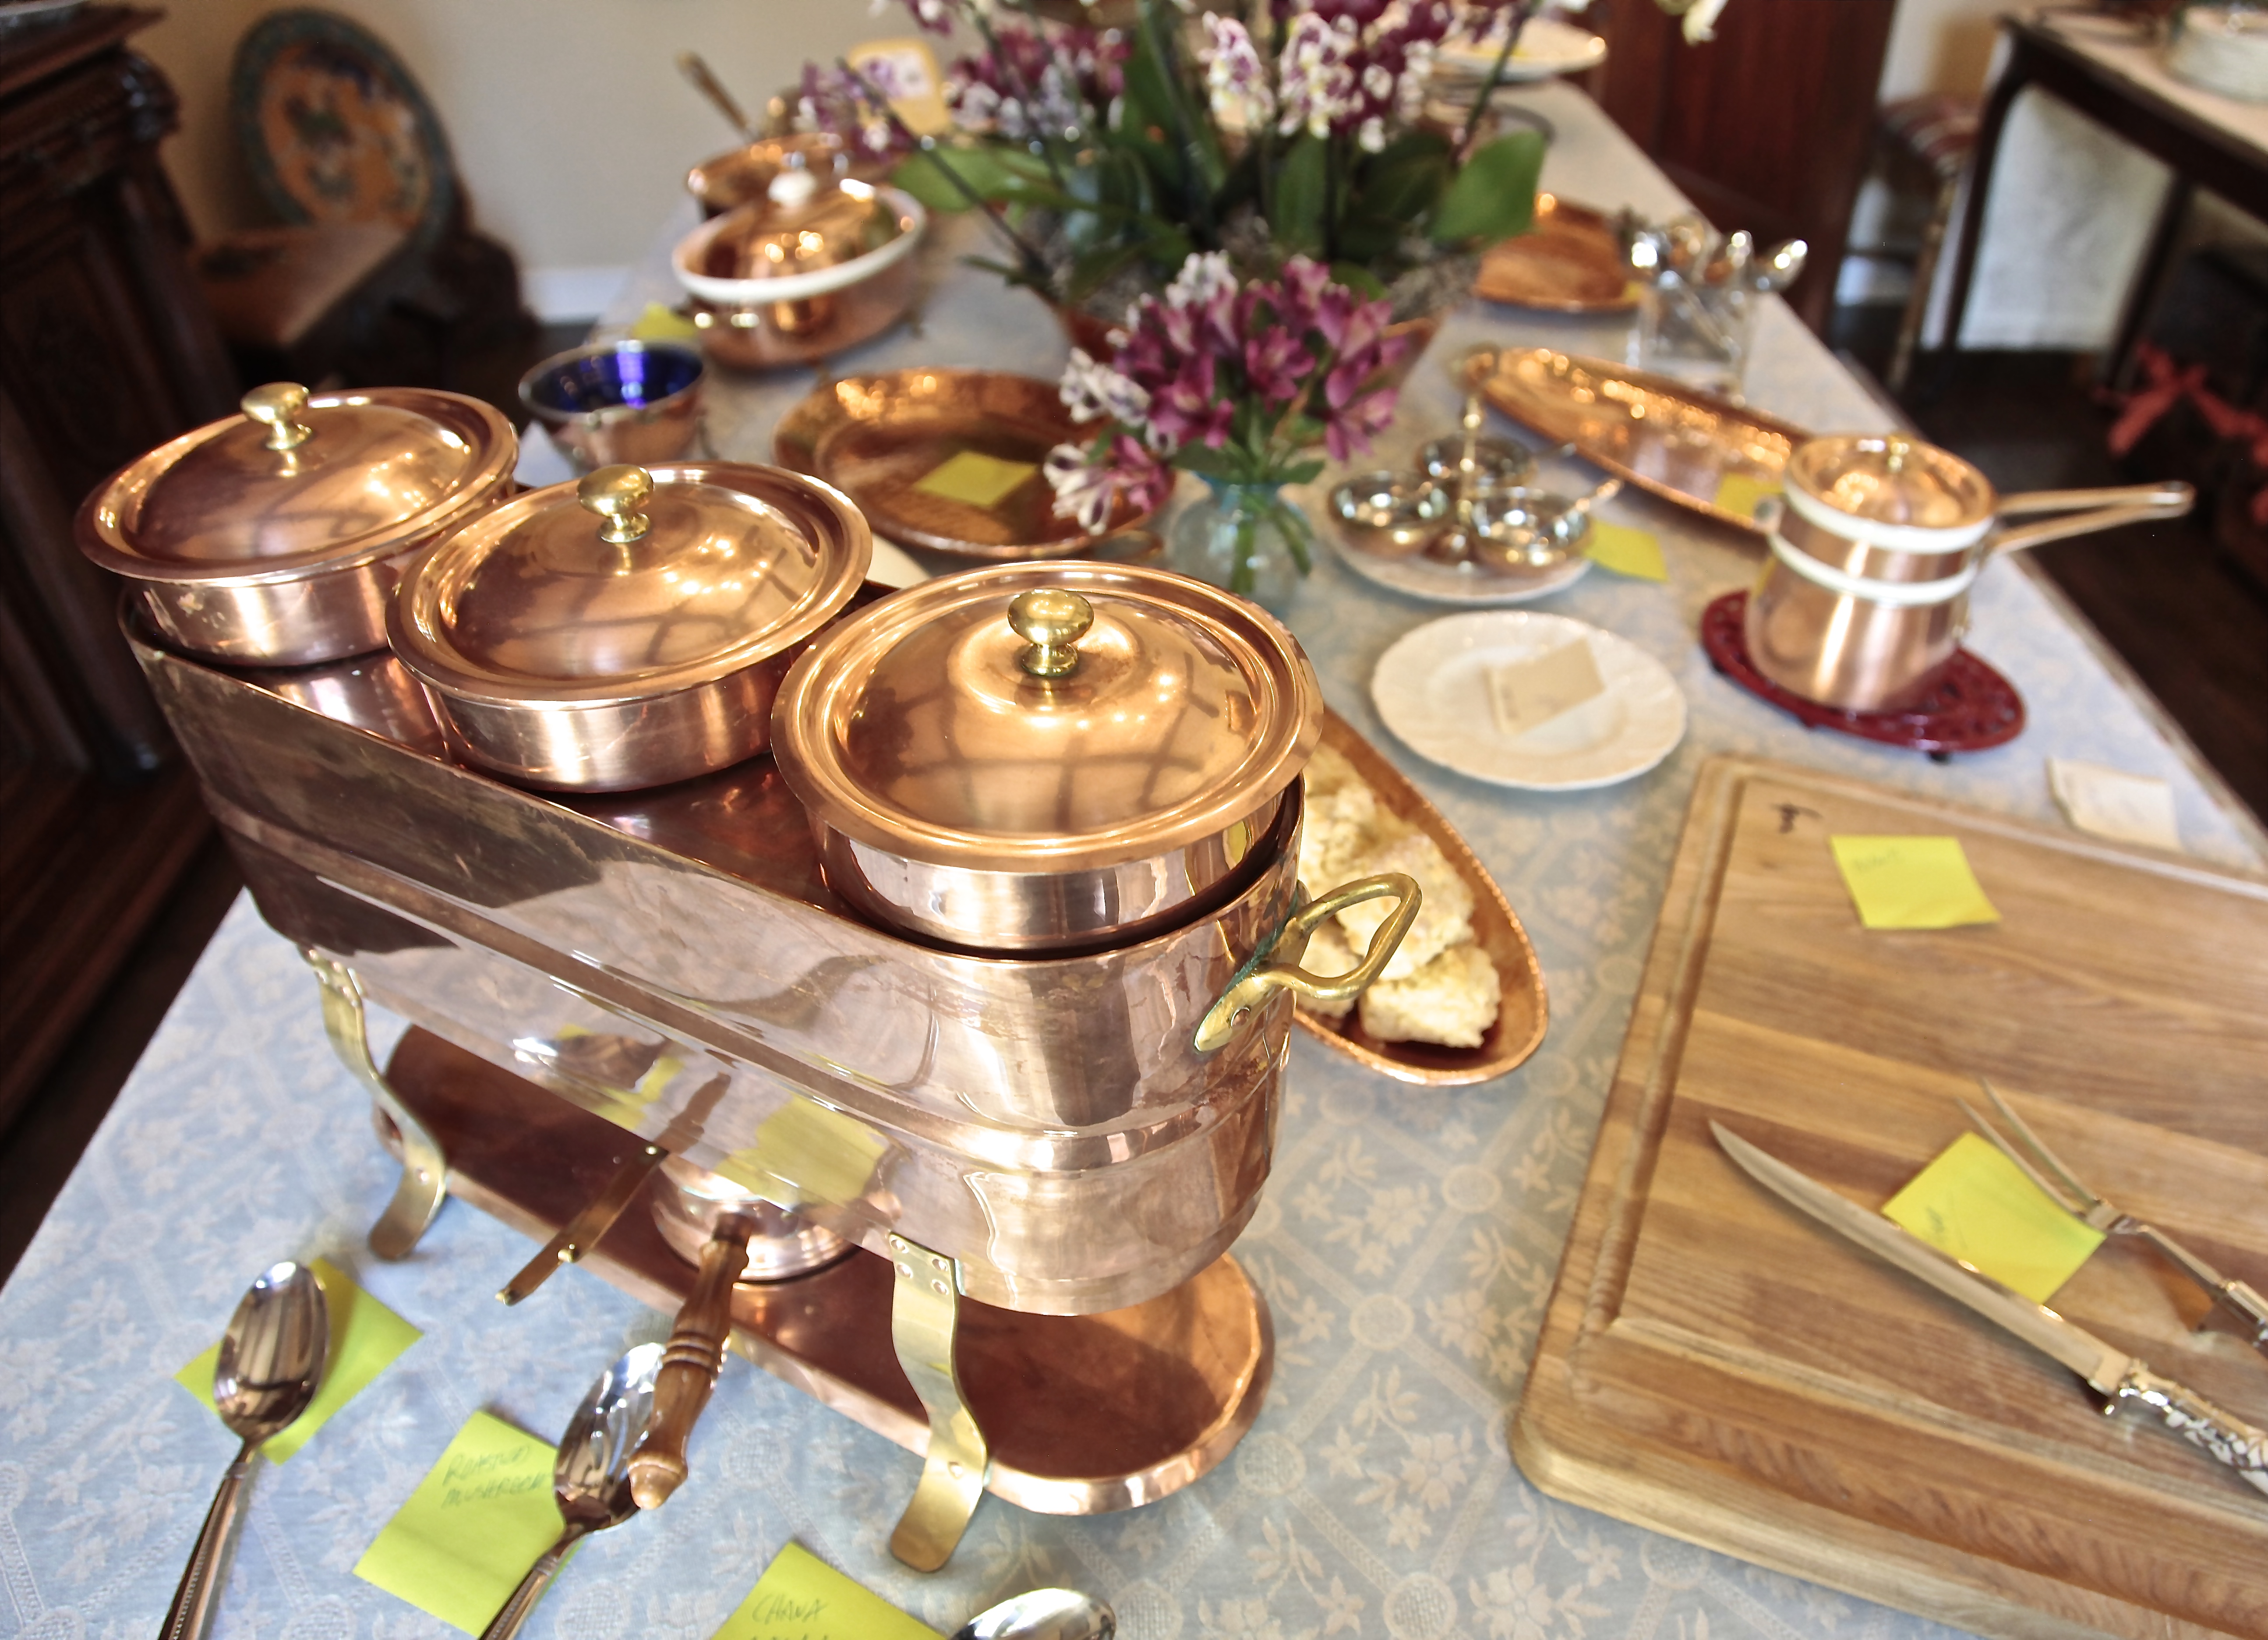 The inherent warmth in copper was welcoming and inviting and made the food even more enticing.